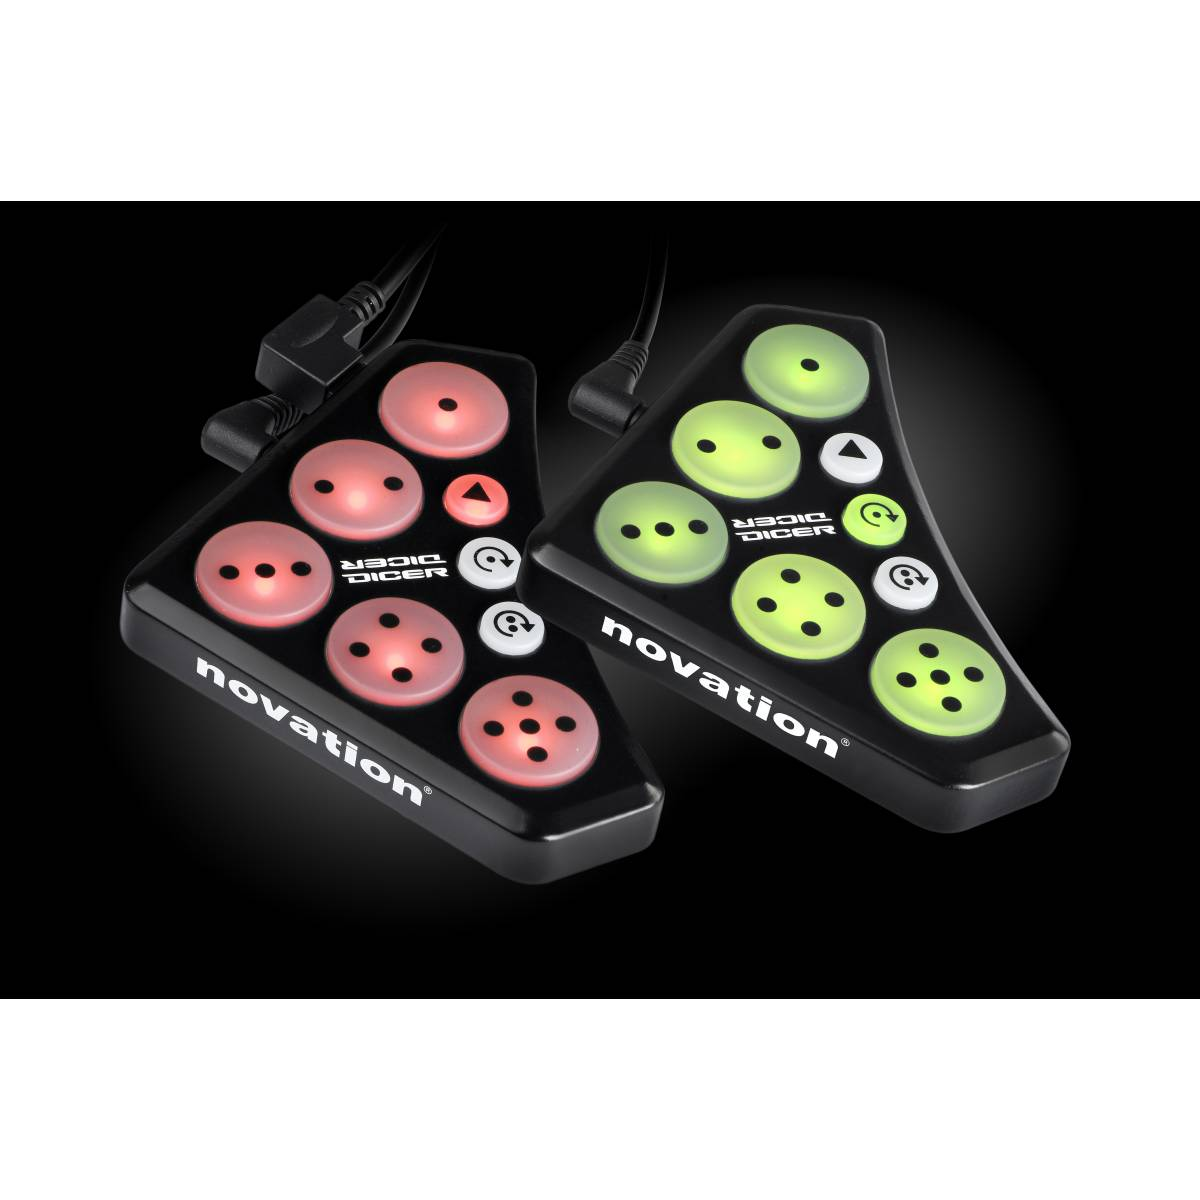 novation dicer cue point looping midi controller pair dj equipment from inta audio uk. Black Bedroom Furniture Sets. Home Design Ideas